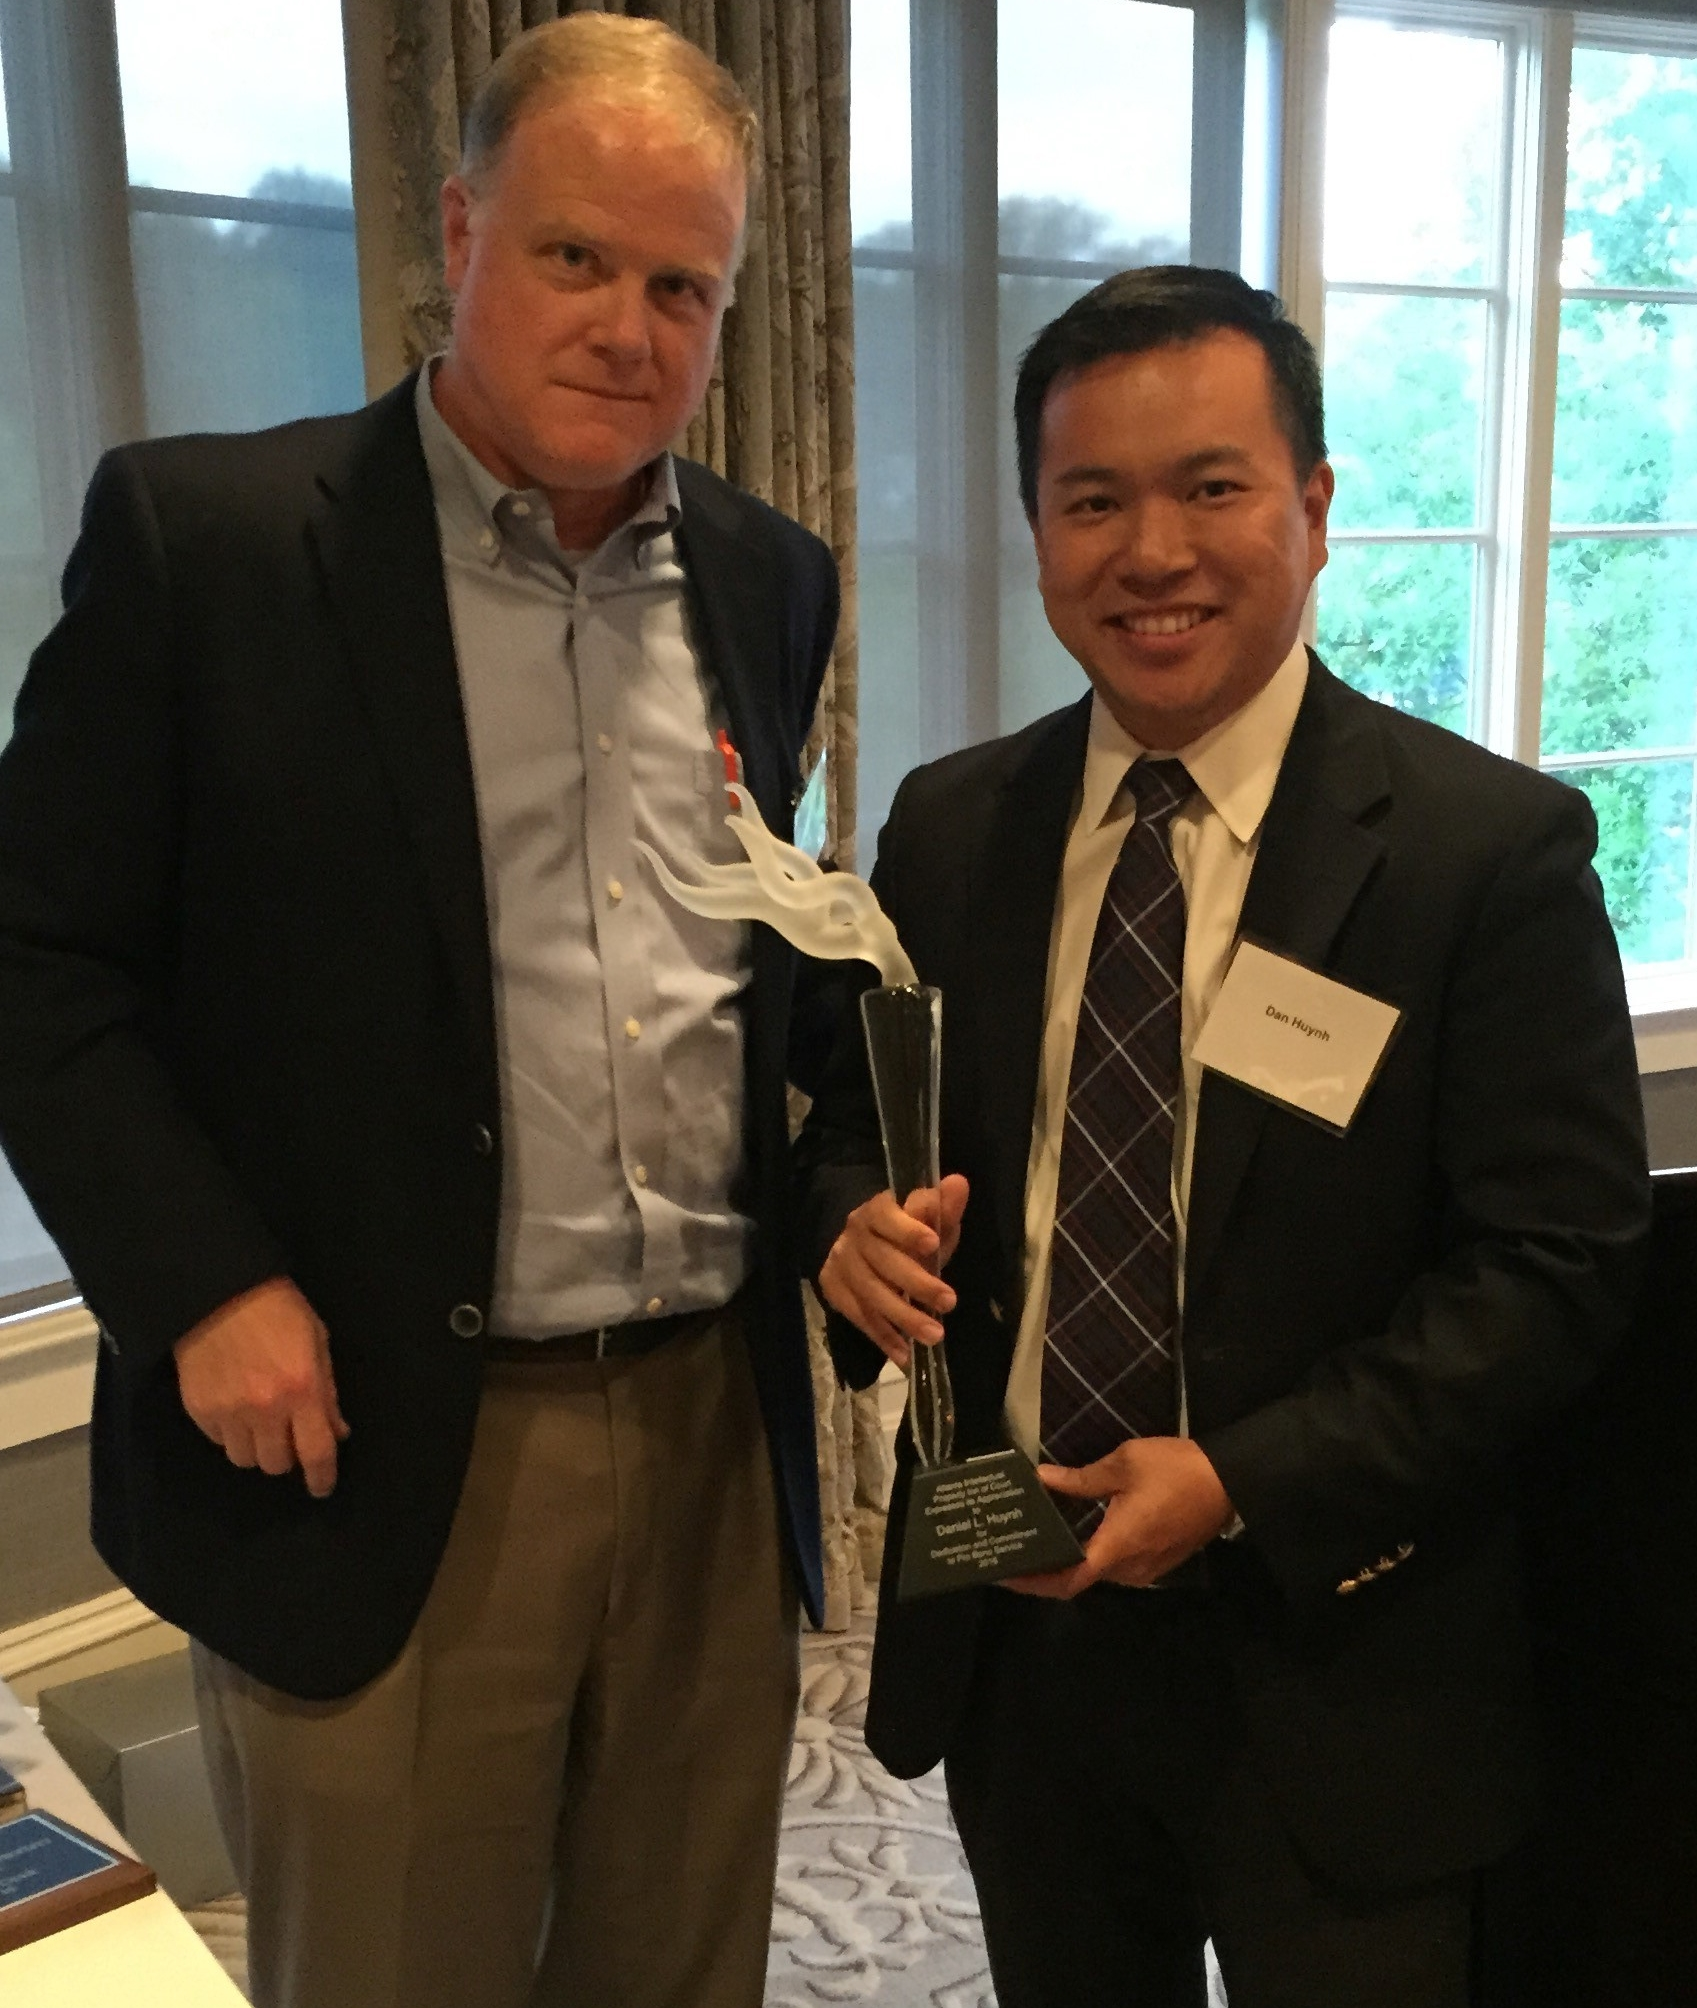 2016 Recipient Daniel Huynh (right) with Pro Bono Award Committee Coordinator, Frank Landgraff (left)